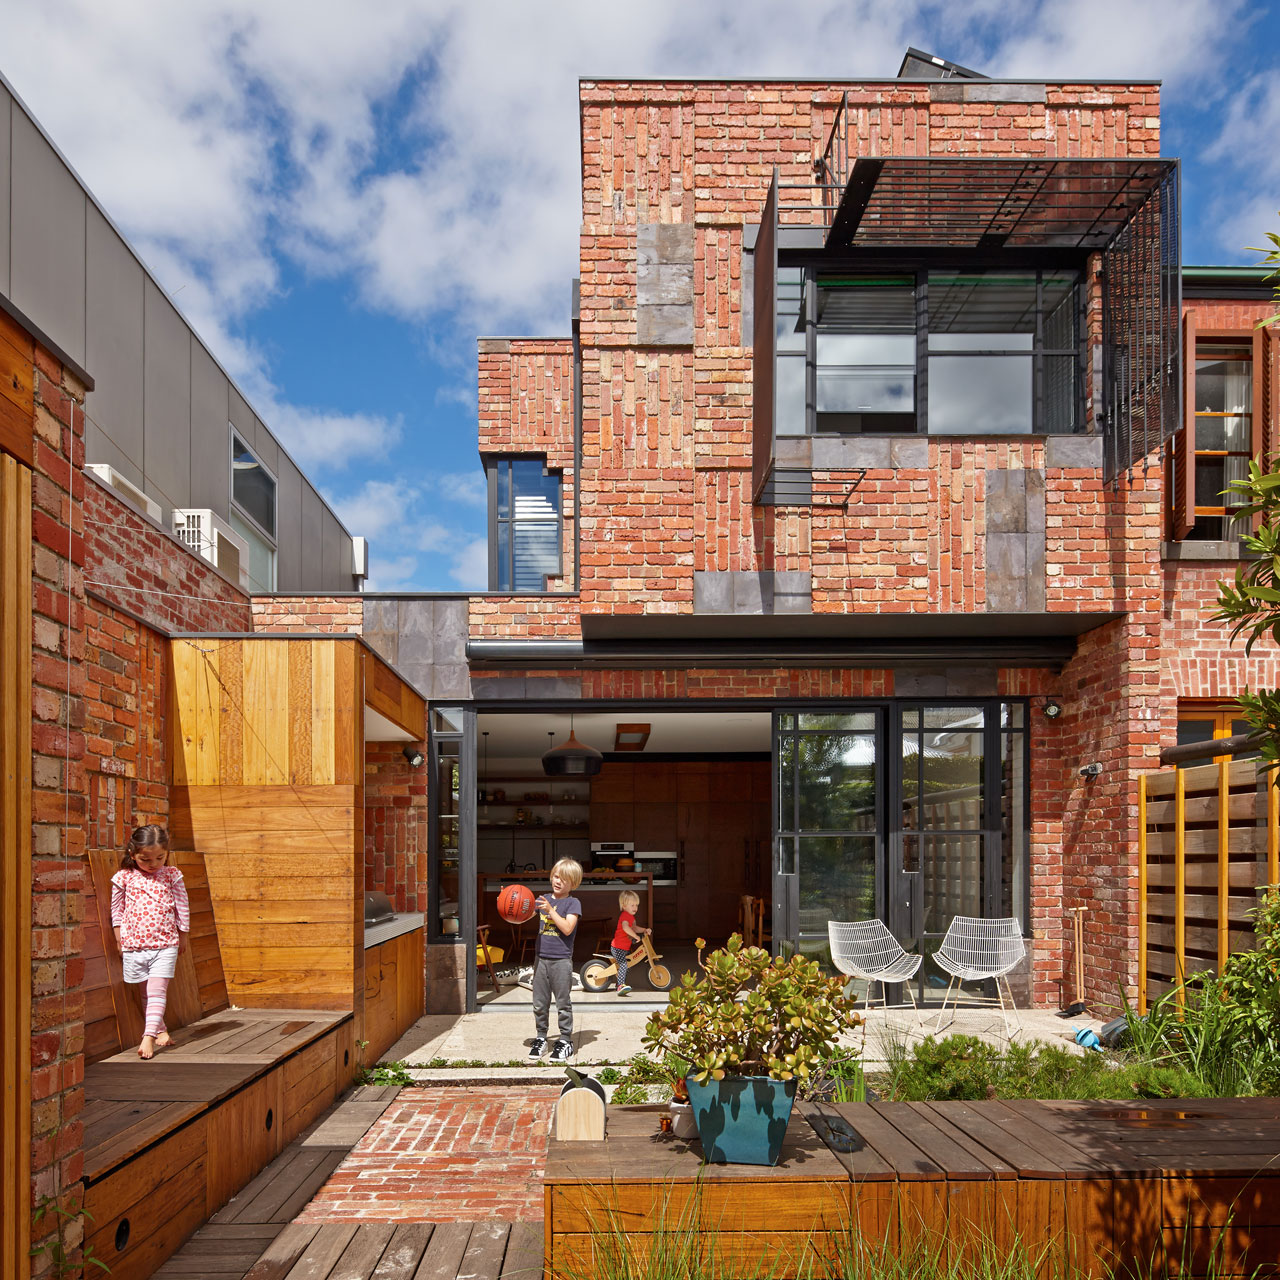 A Victorian Home Renovation Inspired by the Cubomania Method